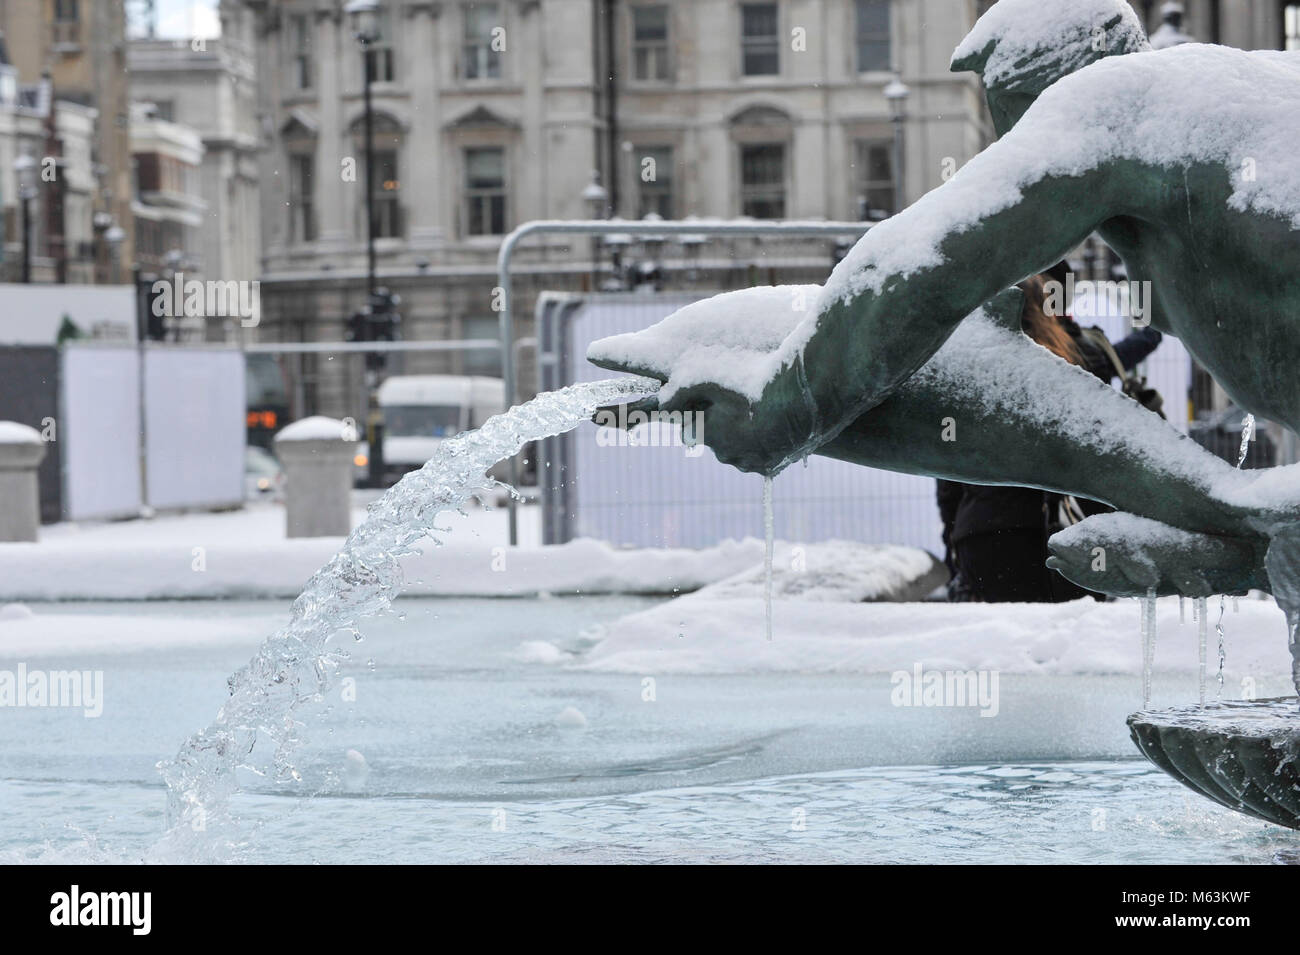 Frozen Fountain A Frozen Fountain In Trafalgar Square Stock Photos A Frozen